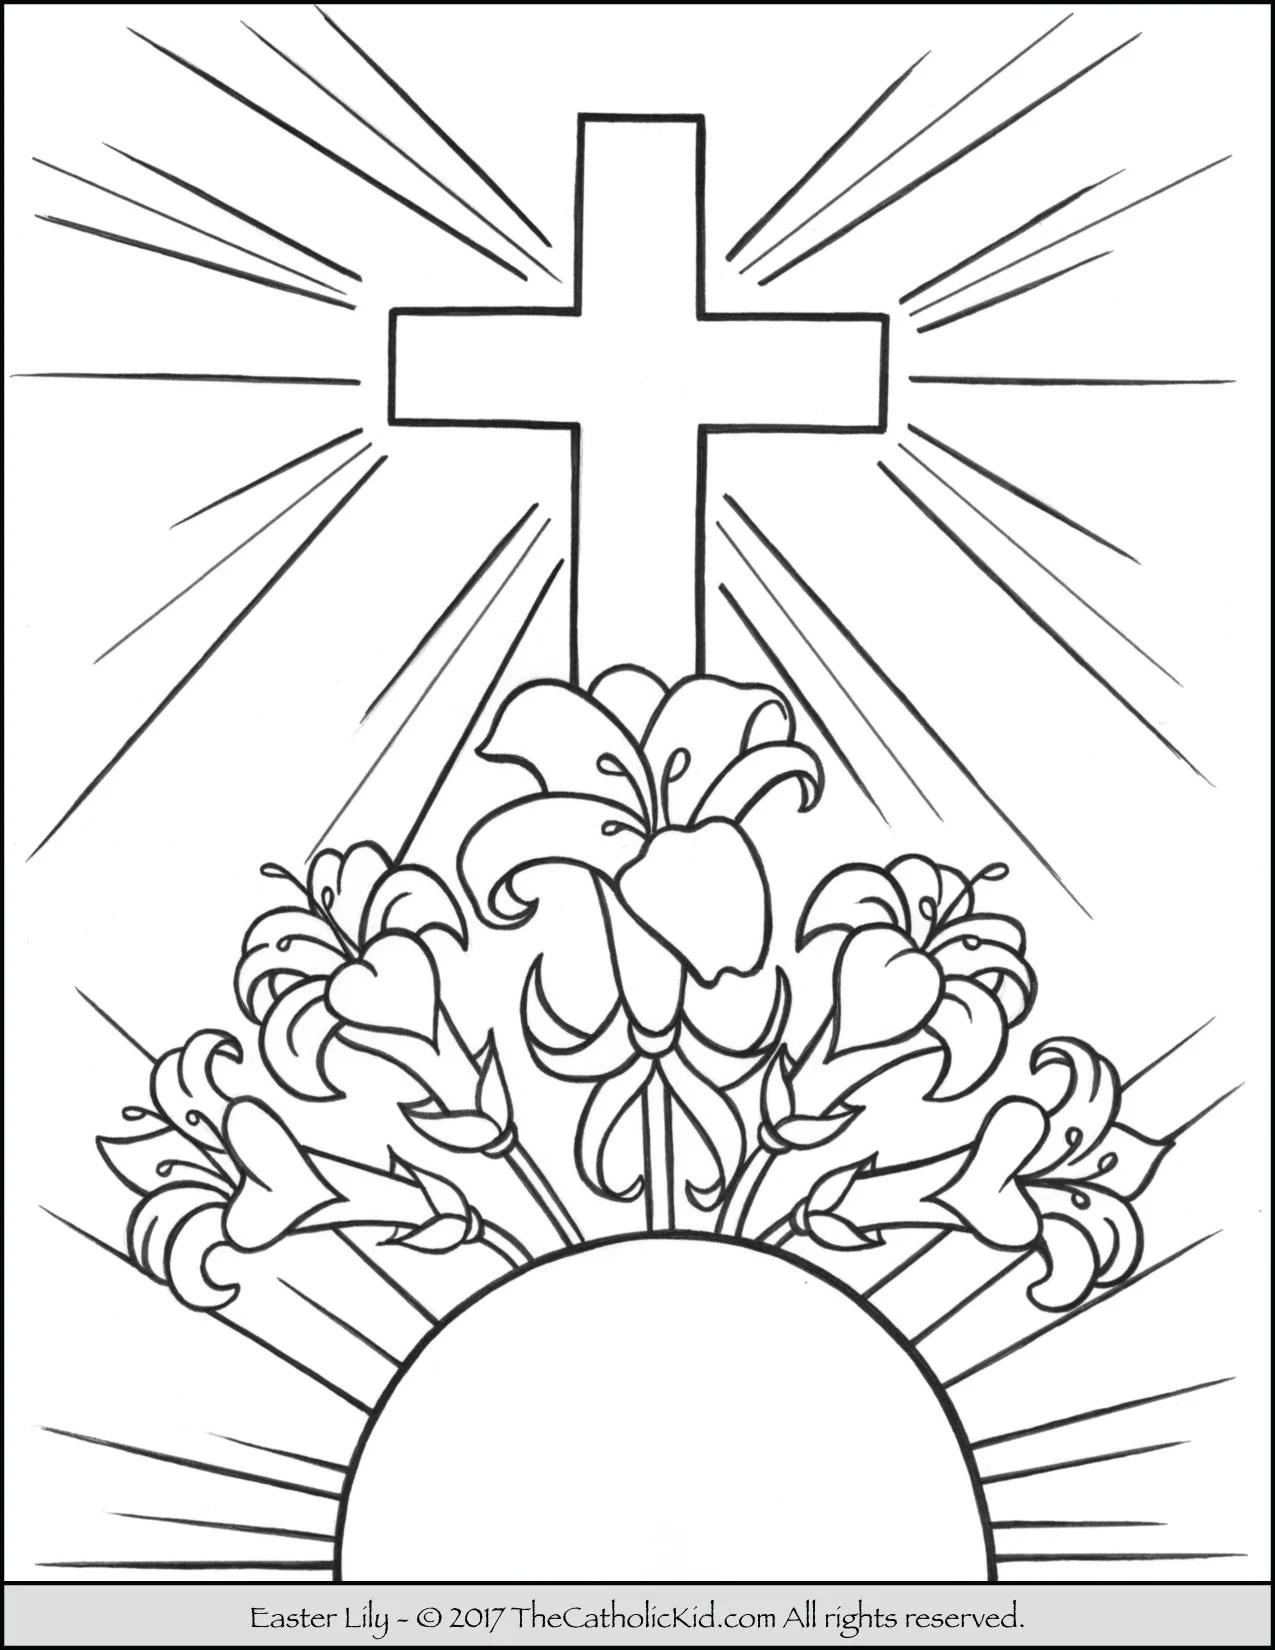 Easter Lily Coloring Page